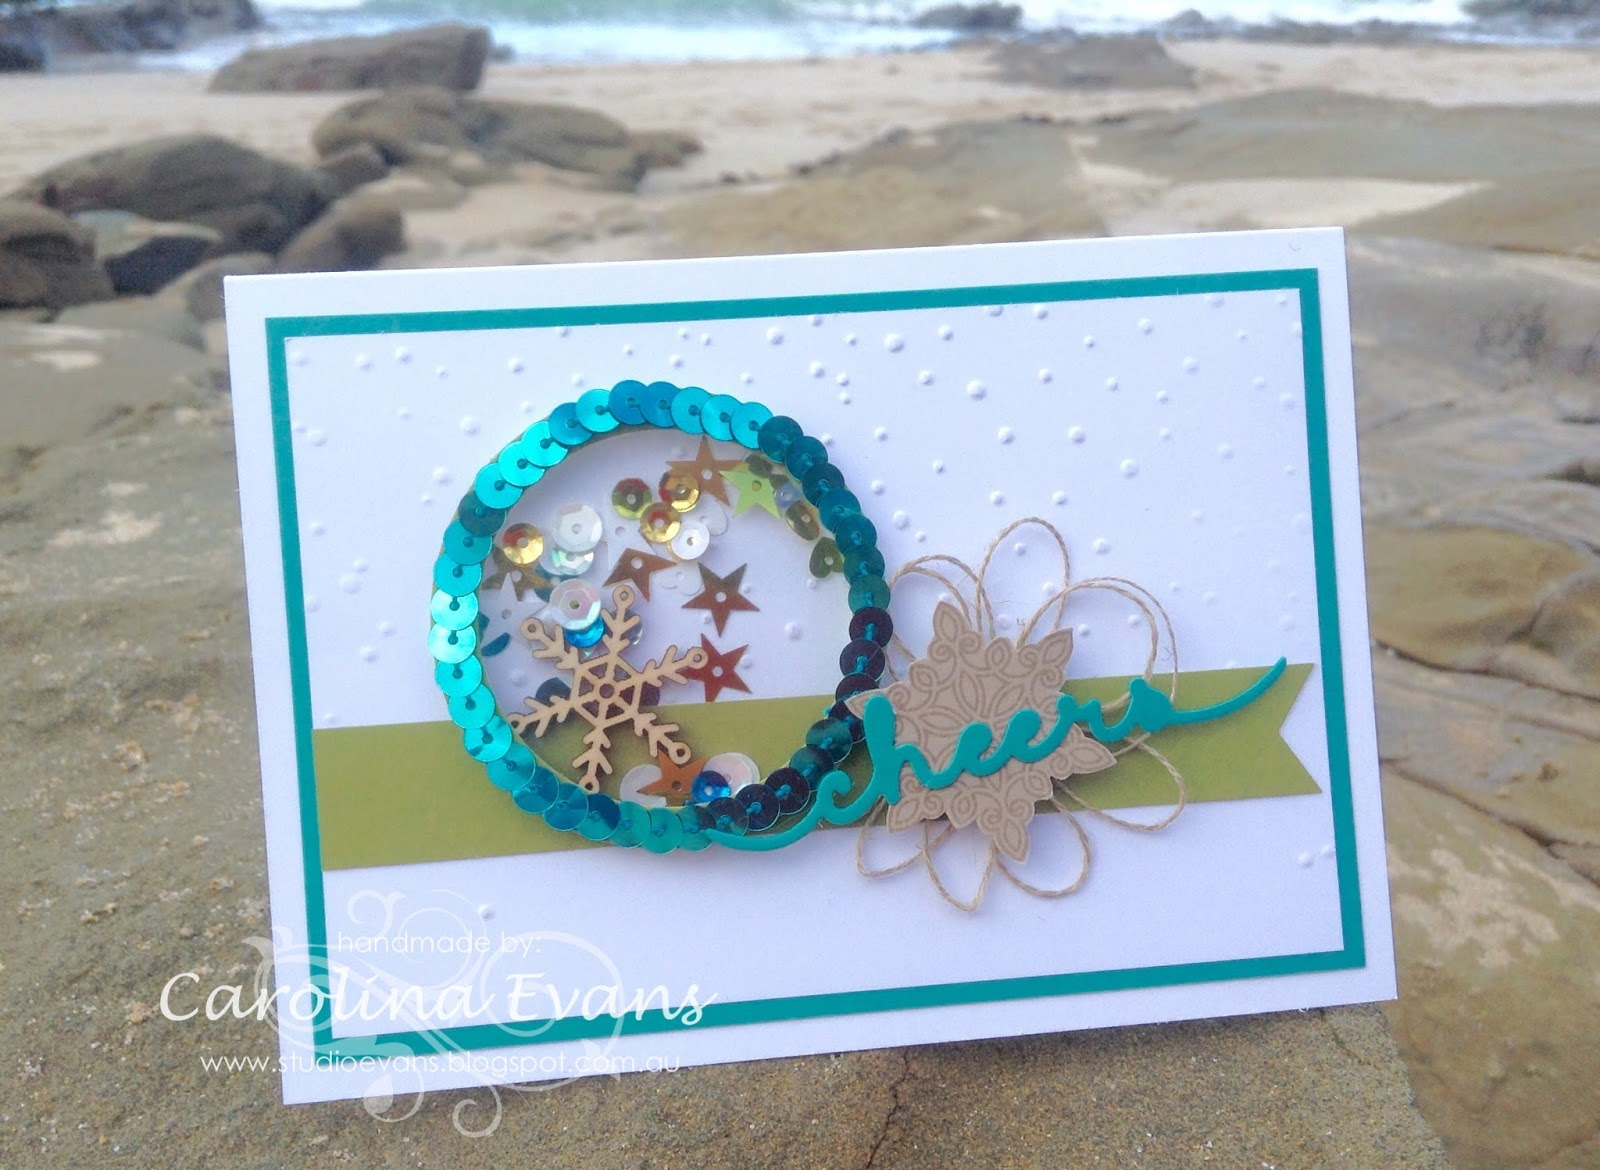 My Kids Were So Happy, They Loved It. Now Todays Card Matches The Ocean  Scene Perfectly! And Its A Shaker Card   Oh My, So Fun   Love Making Them!!